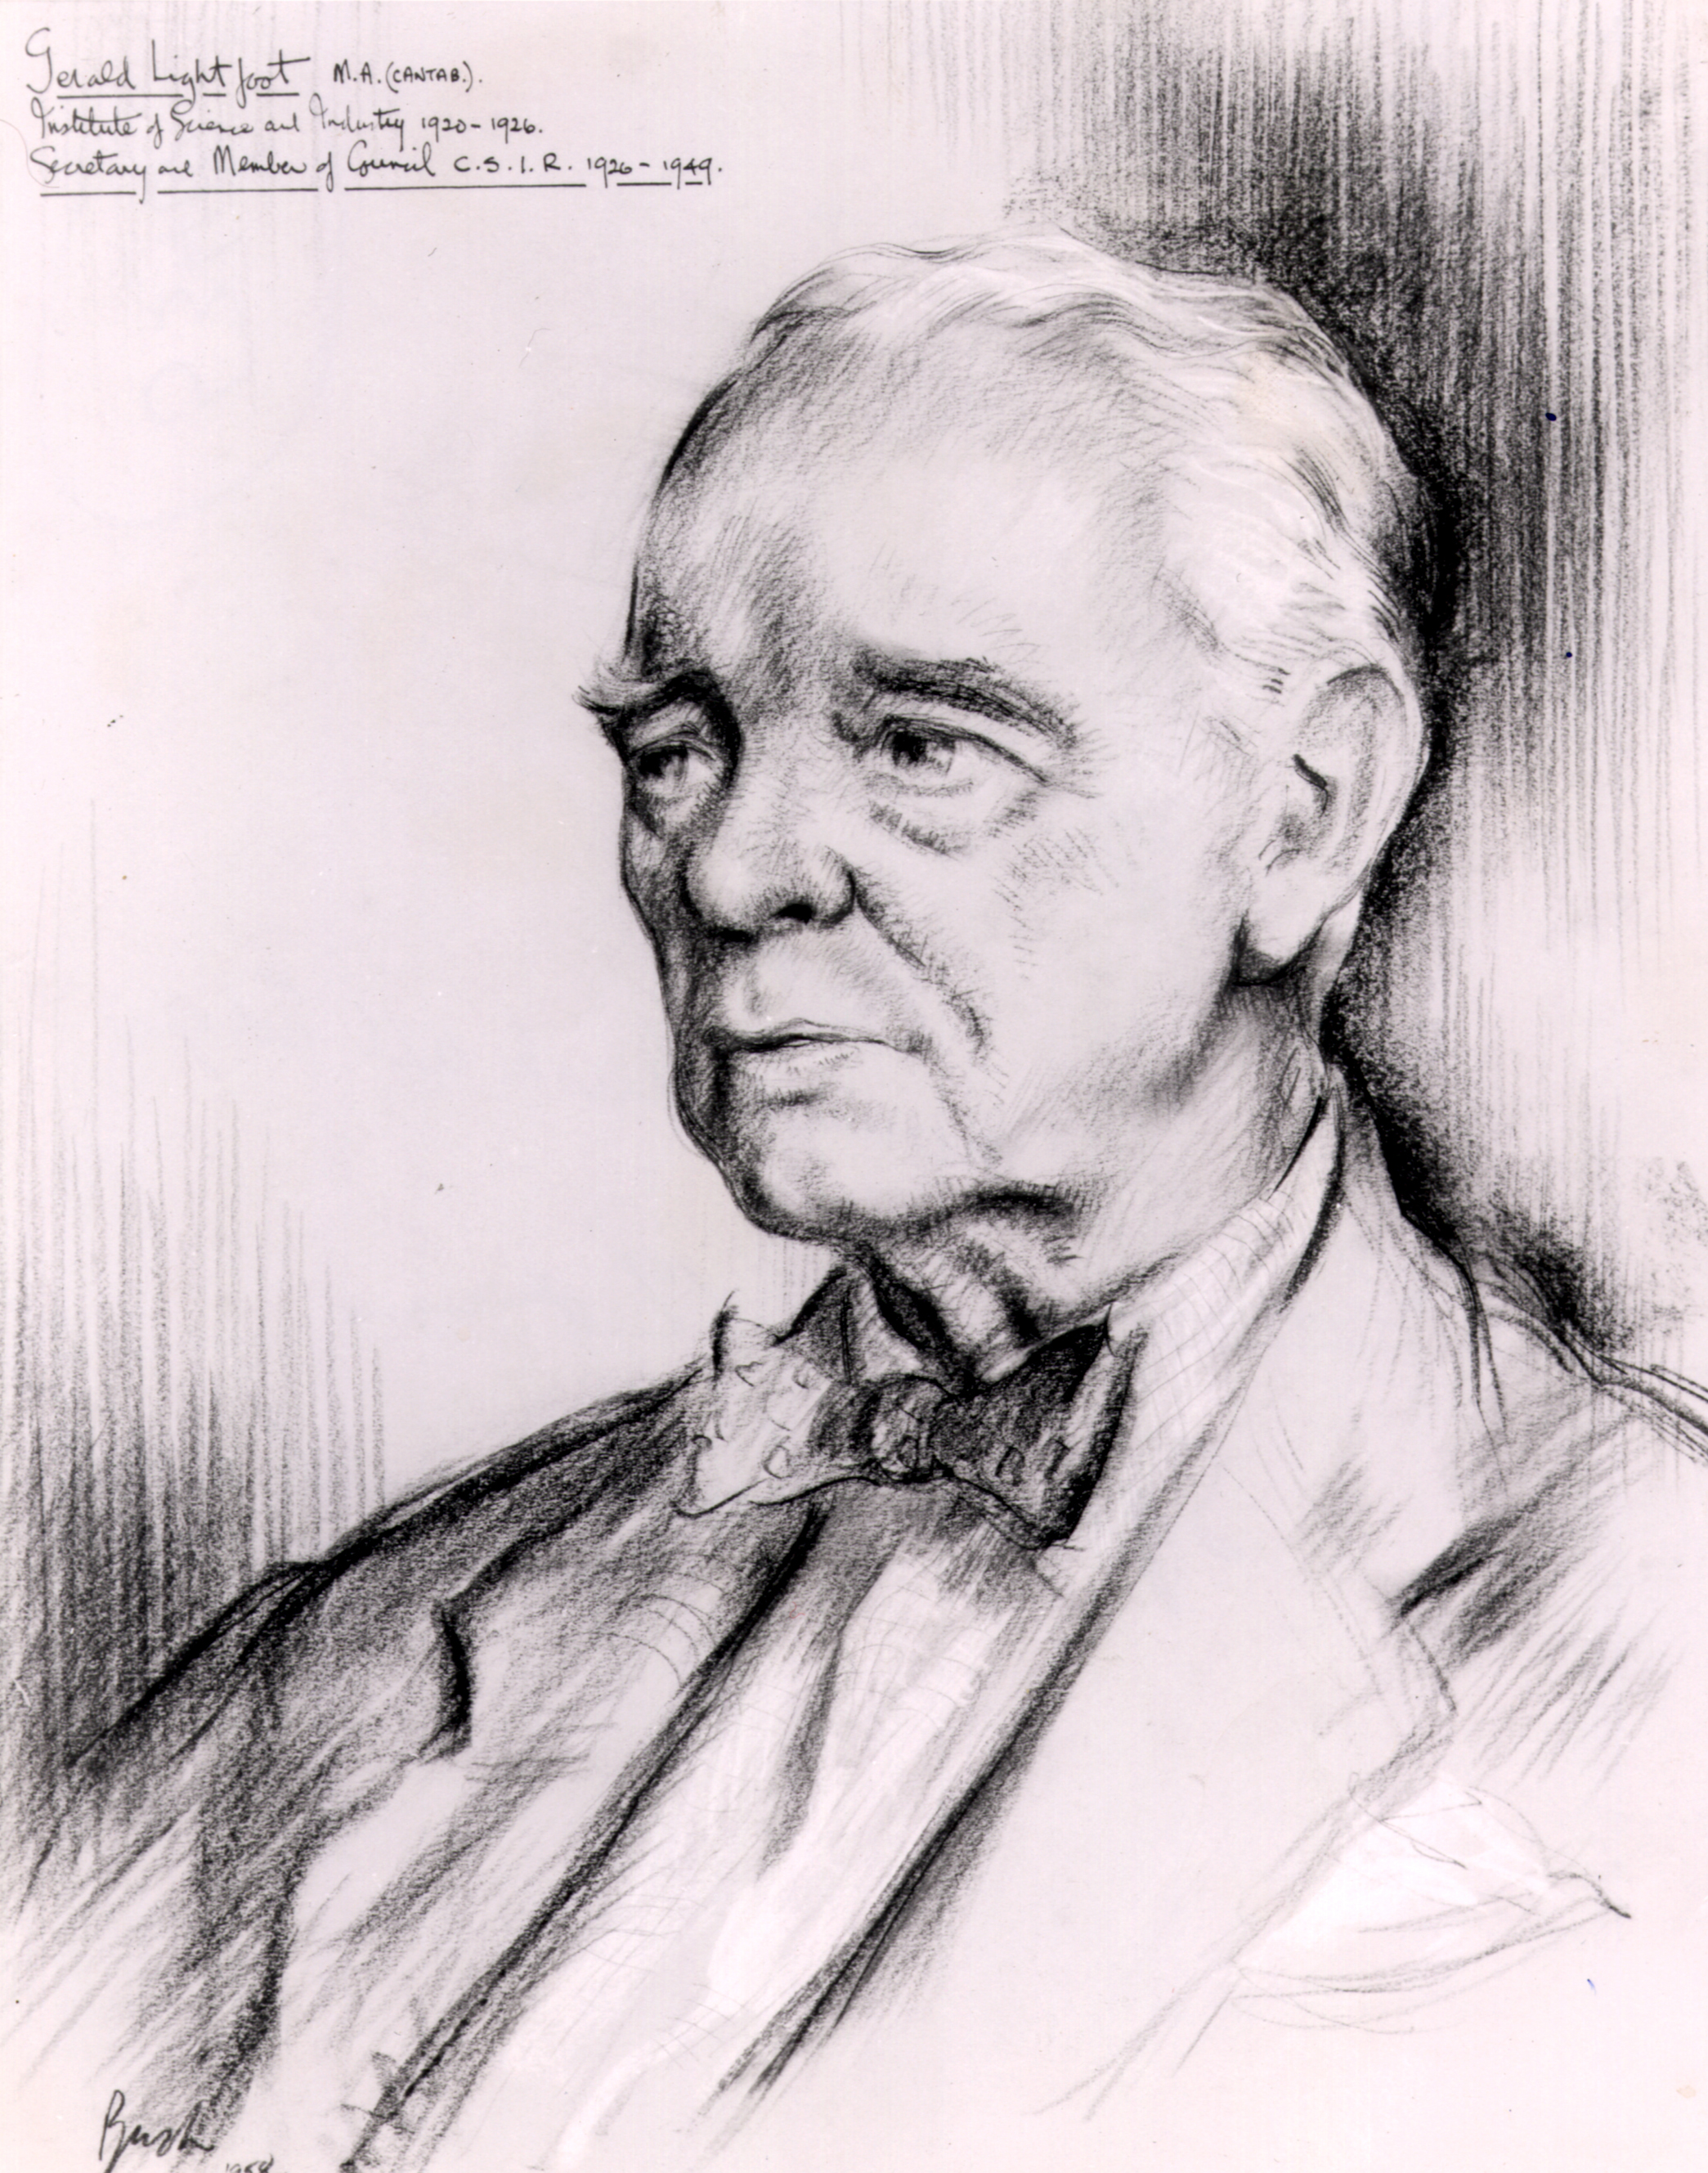 Portrait of Gerald Lightfoot